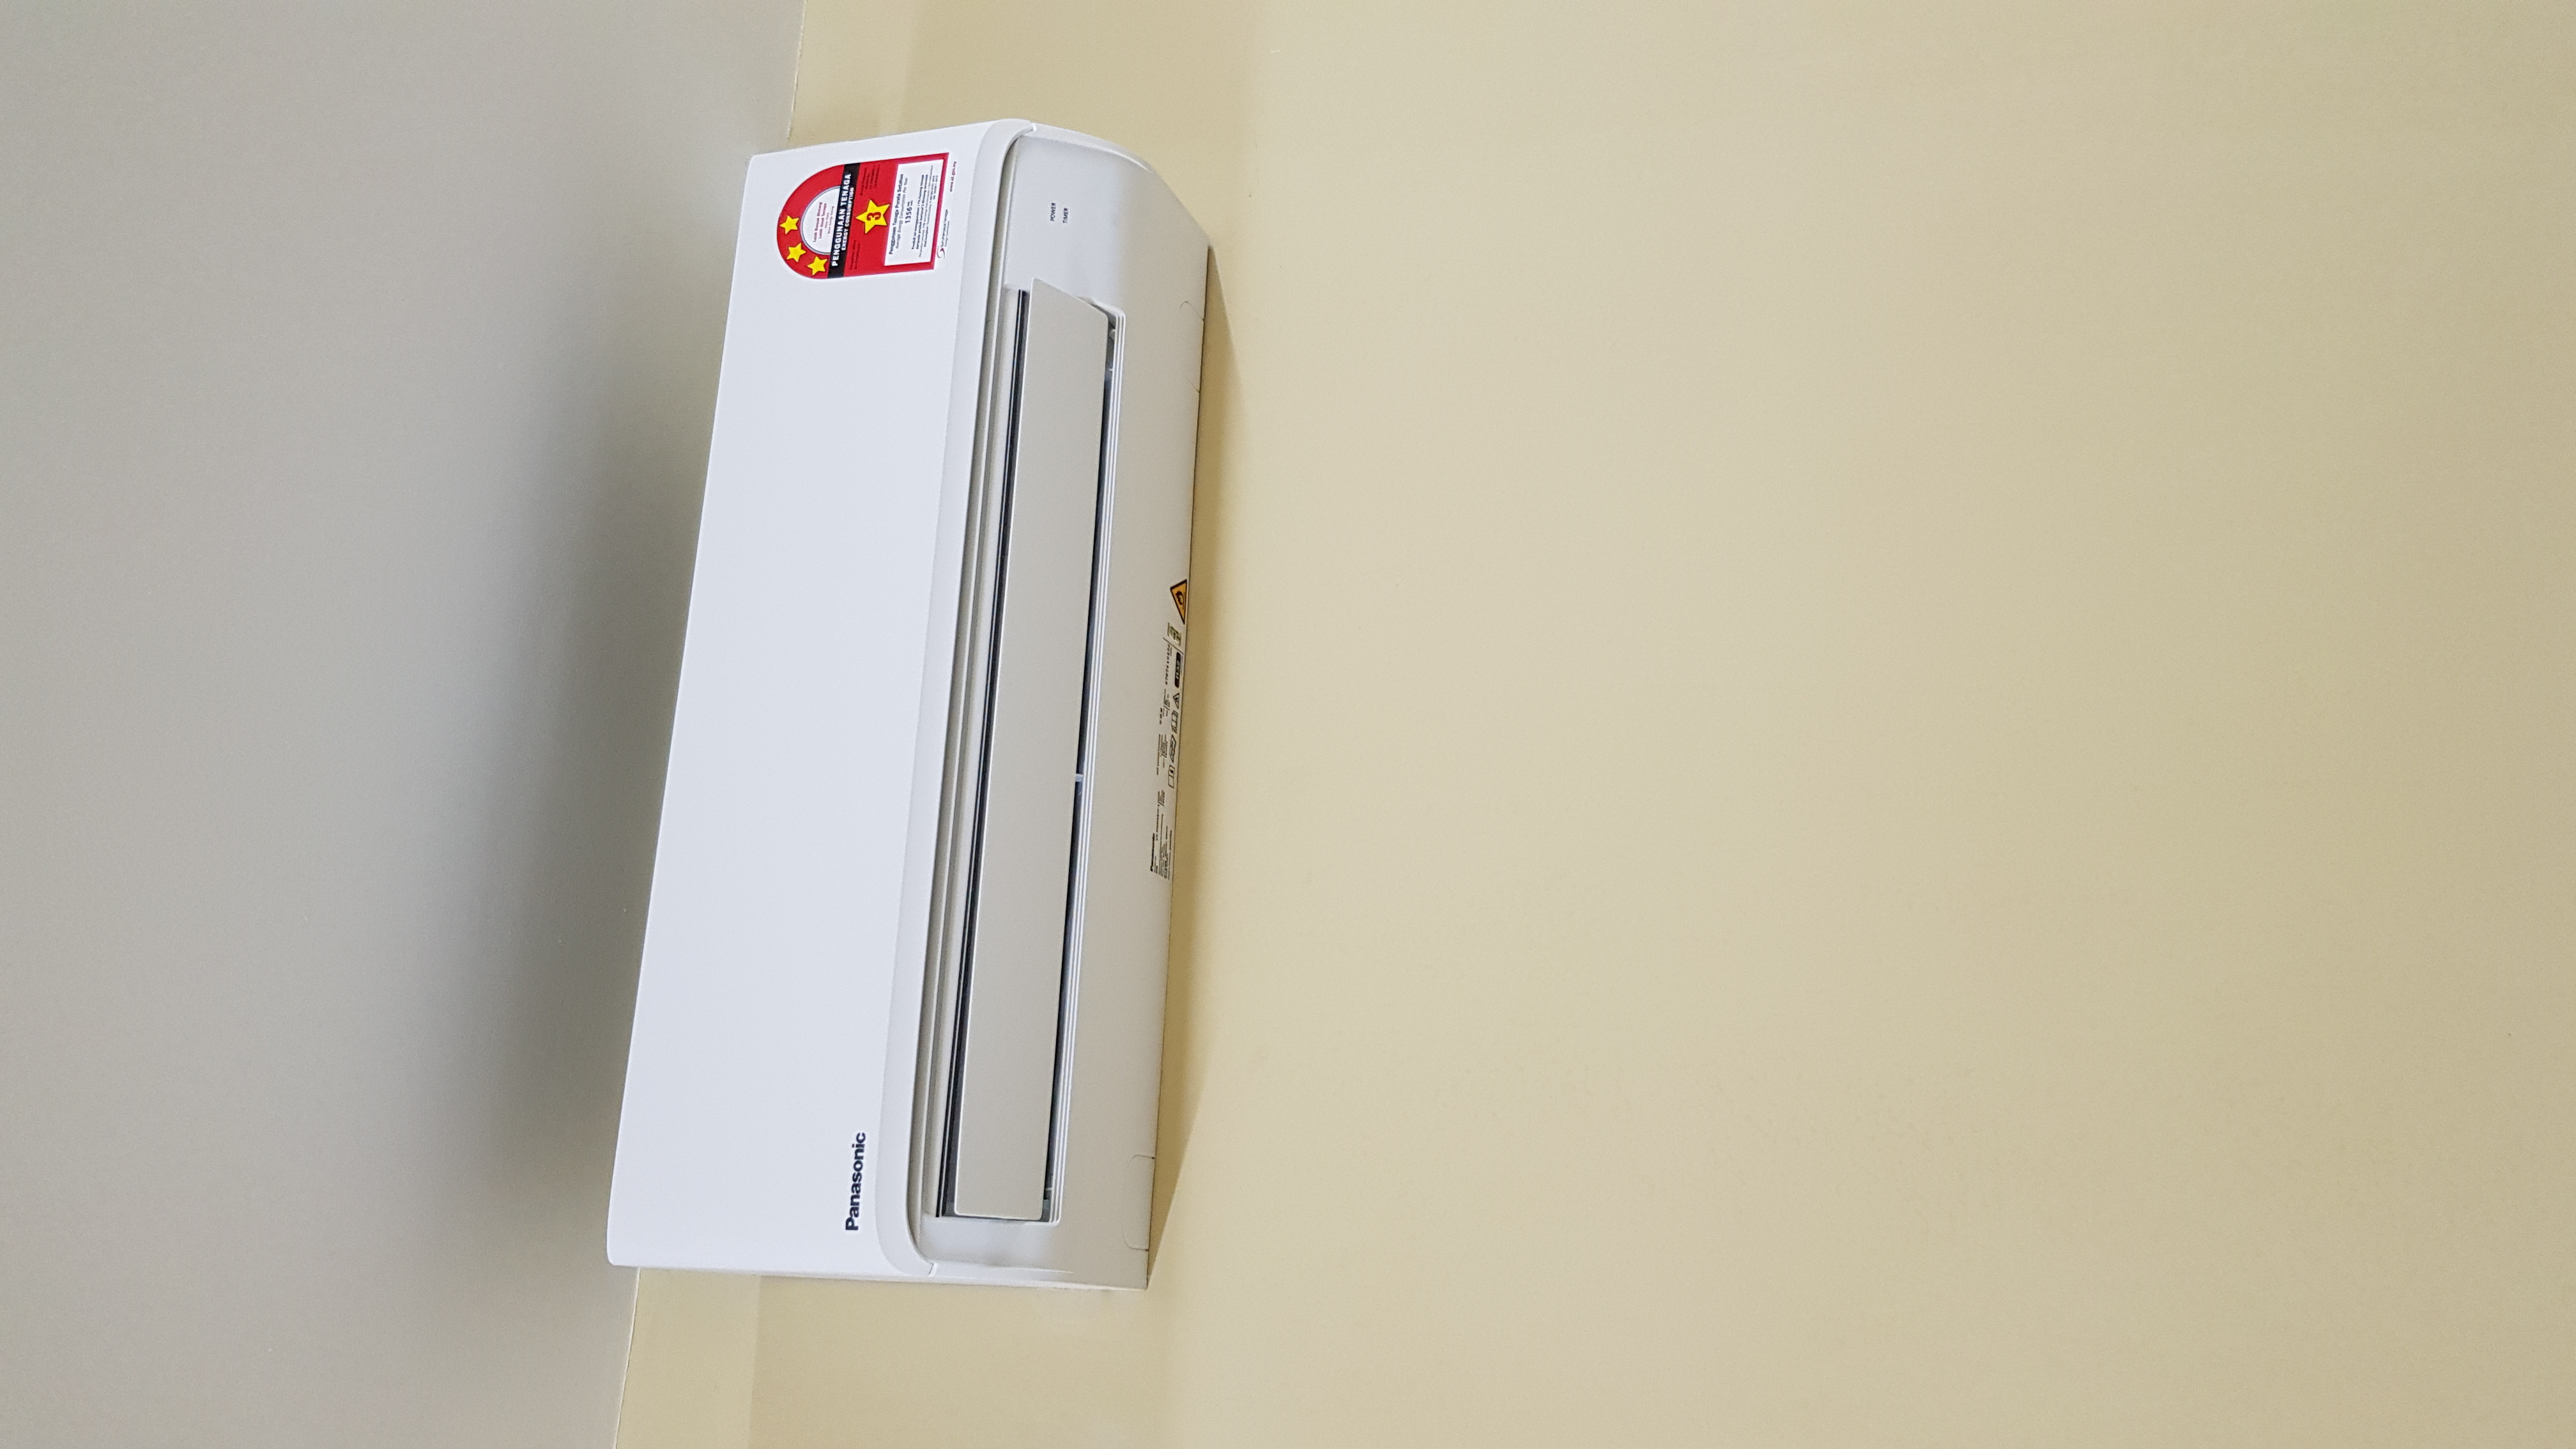 1 HP Air Conditioner